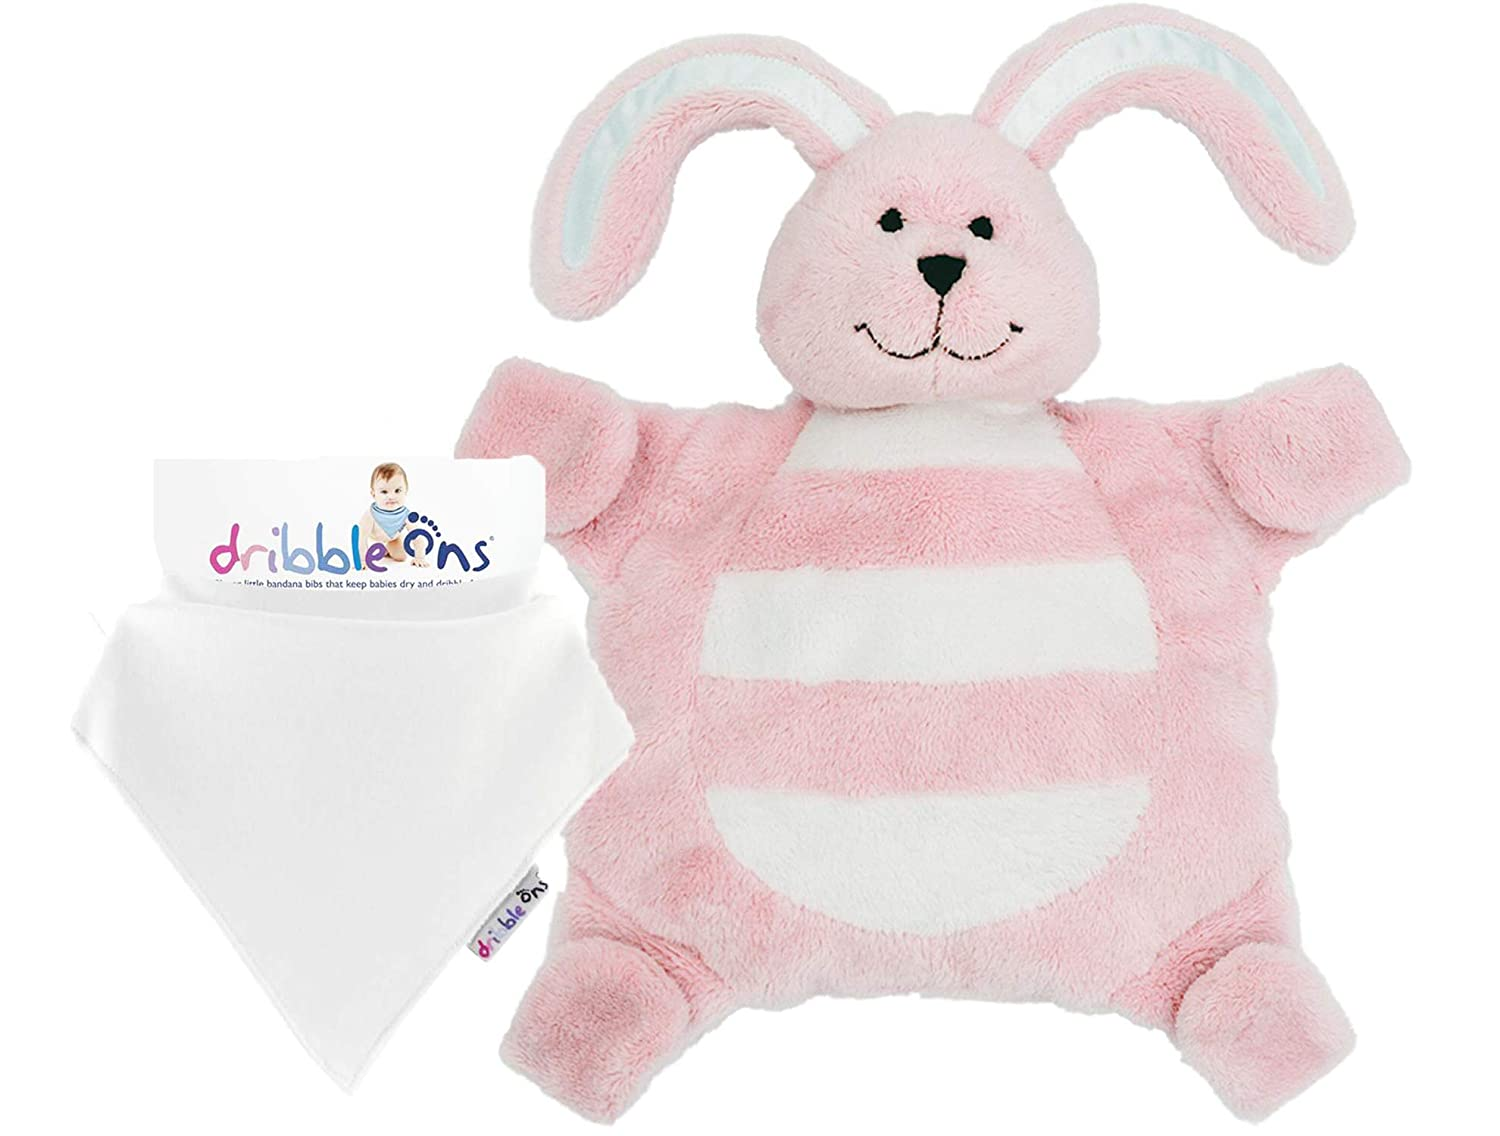 Gift Bundle Award Winning Attachable Pink Bunny Sleepytot Comforter Baby Sleeping Aid with Stick Together Paws to hold Soothers Plus White Bandana Dribble On Bib